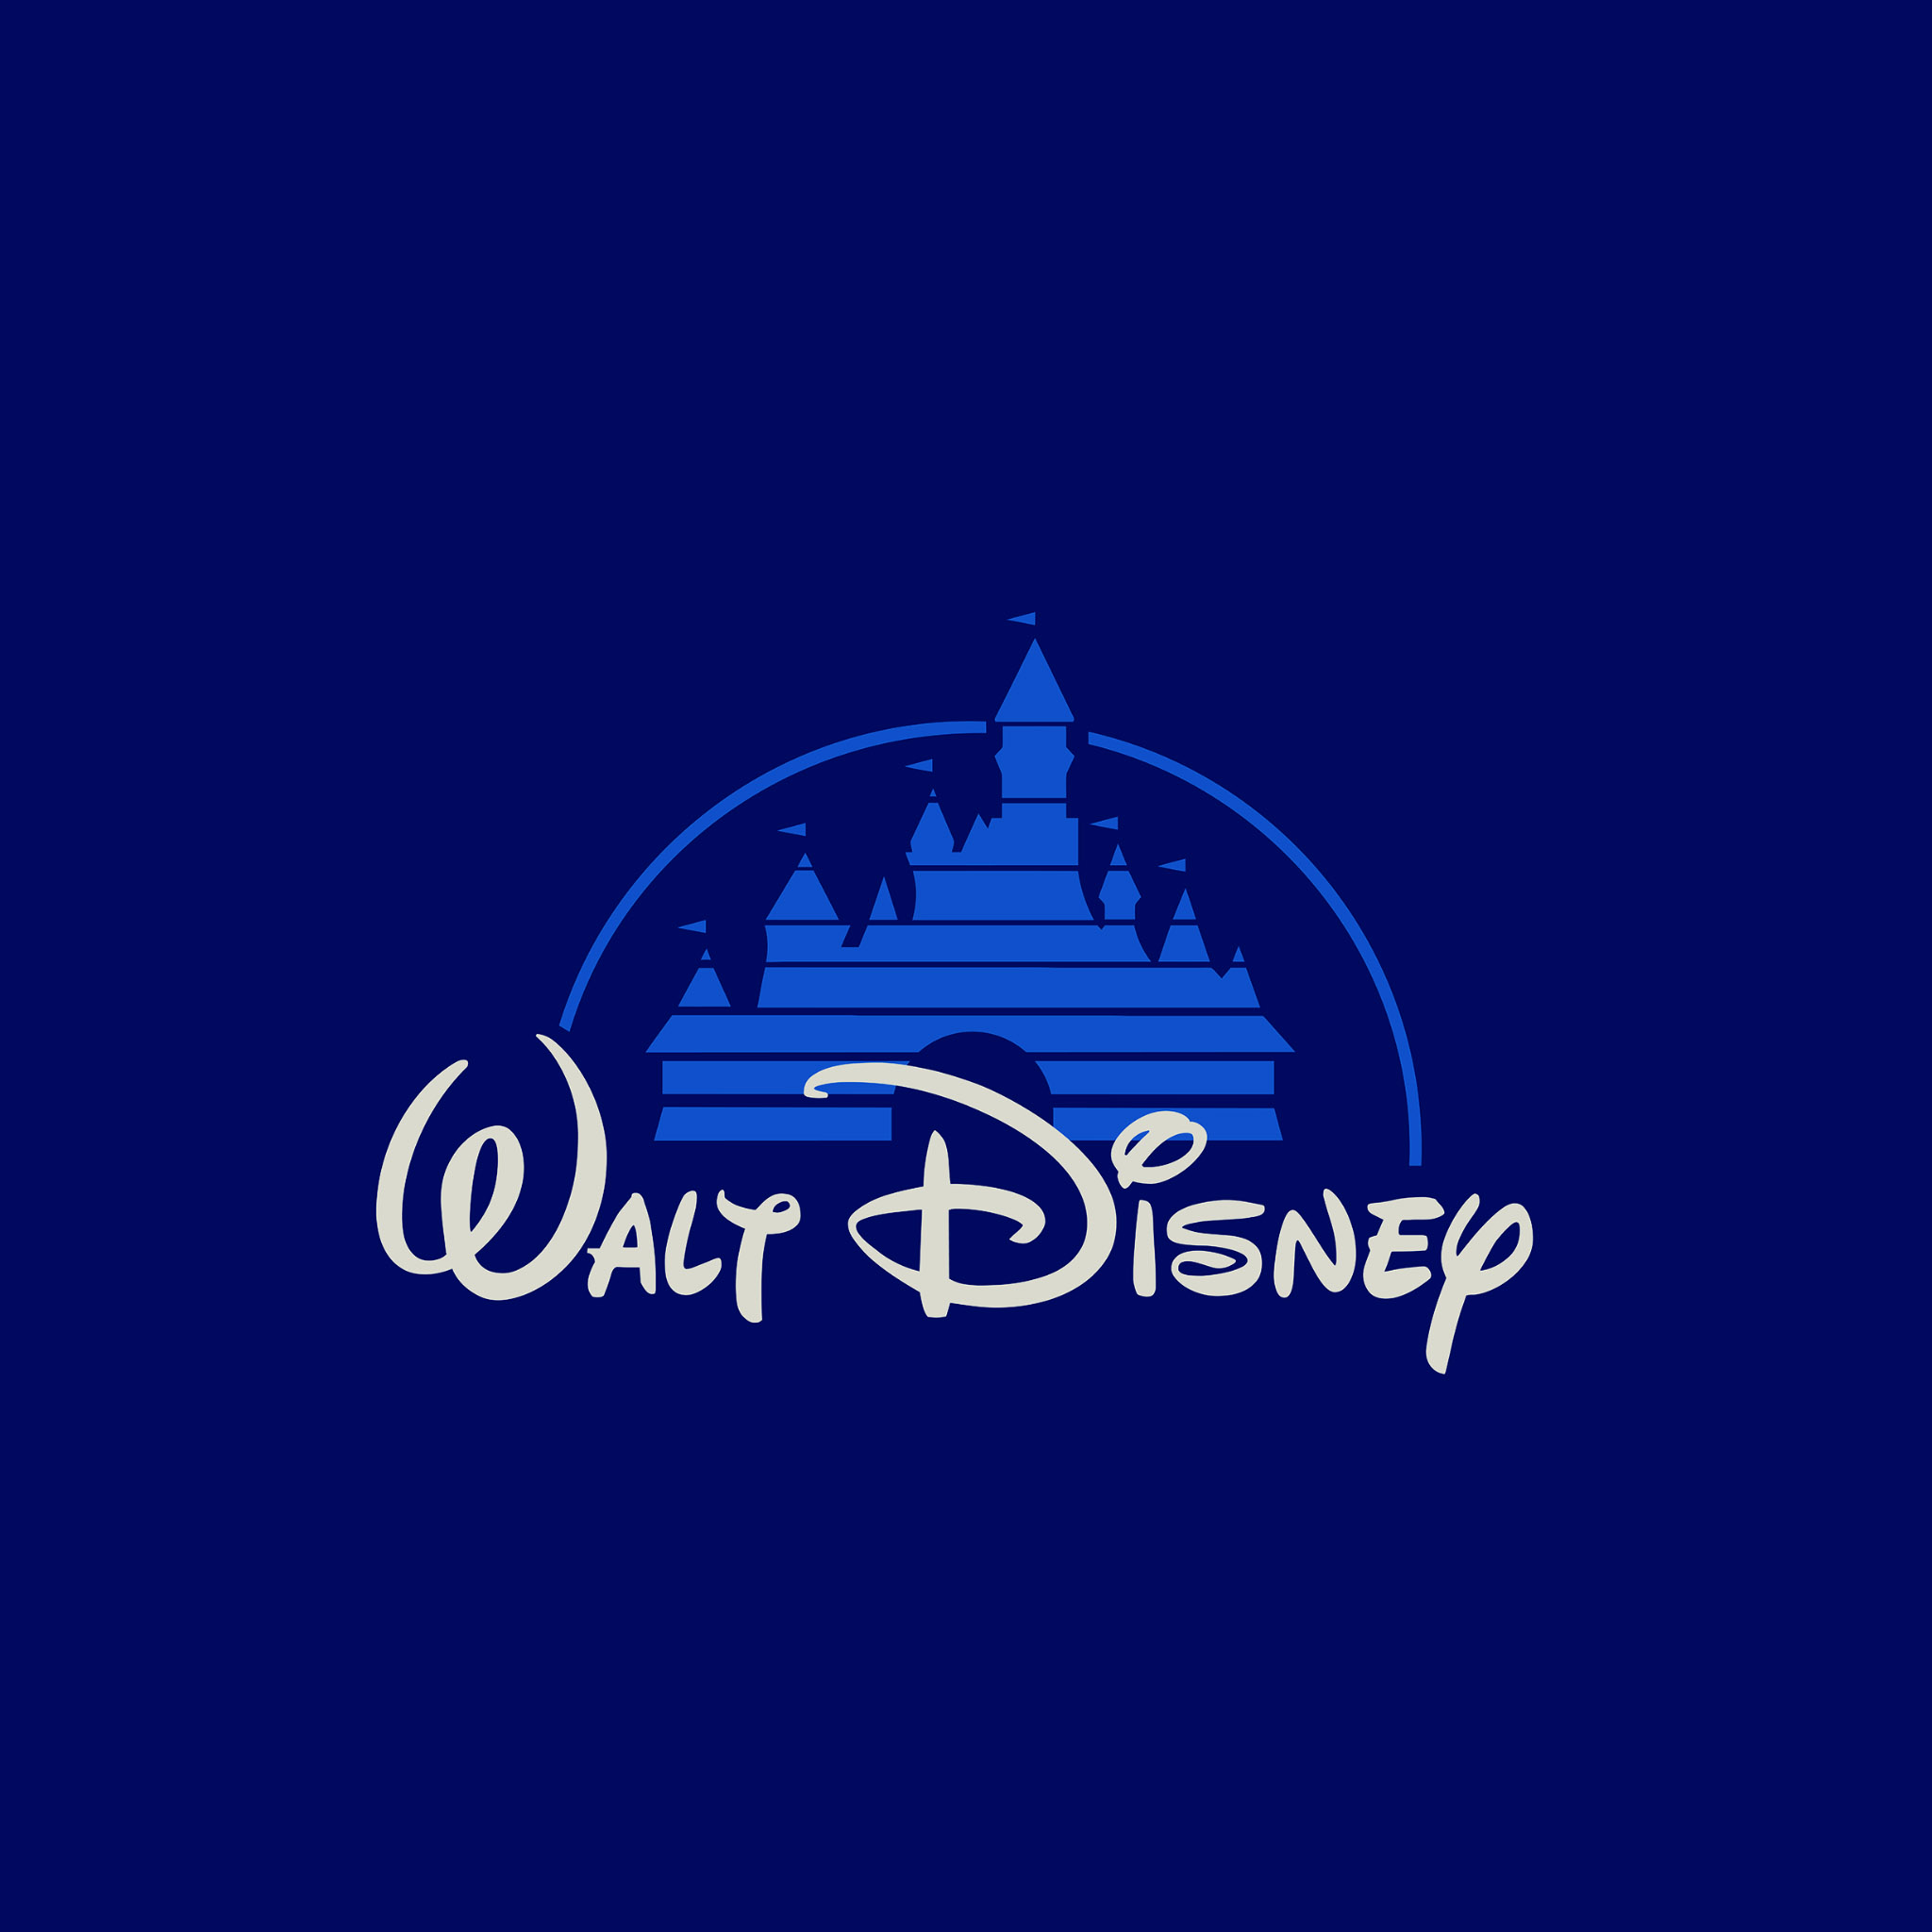 disney logo wallpaper 3 2048x2048